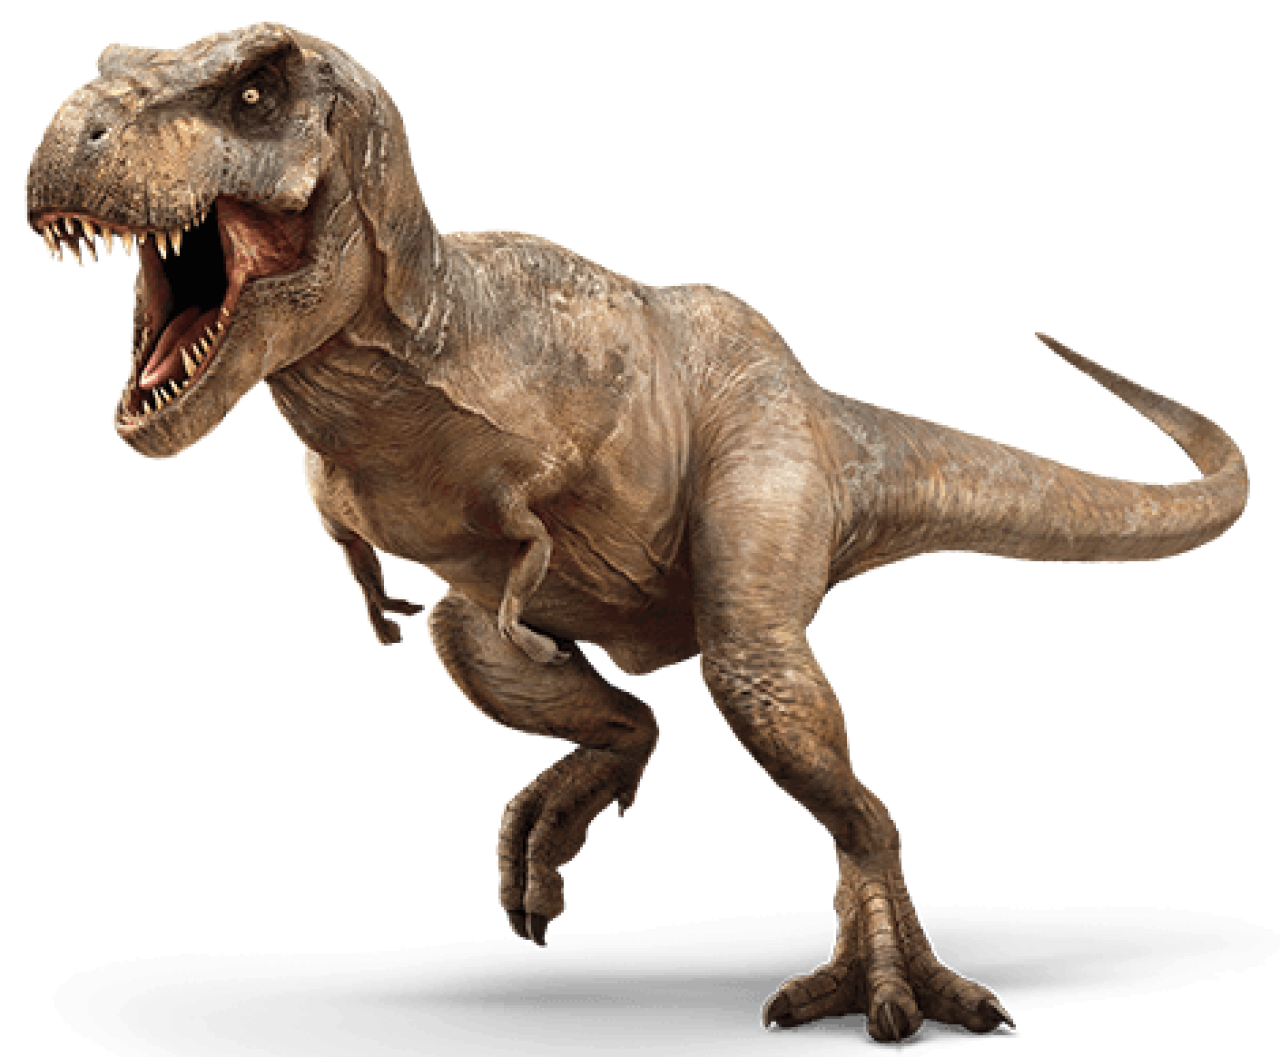 Jurassic World Transparent PNG Image